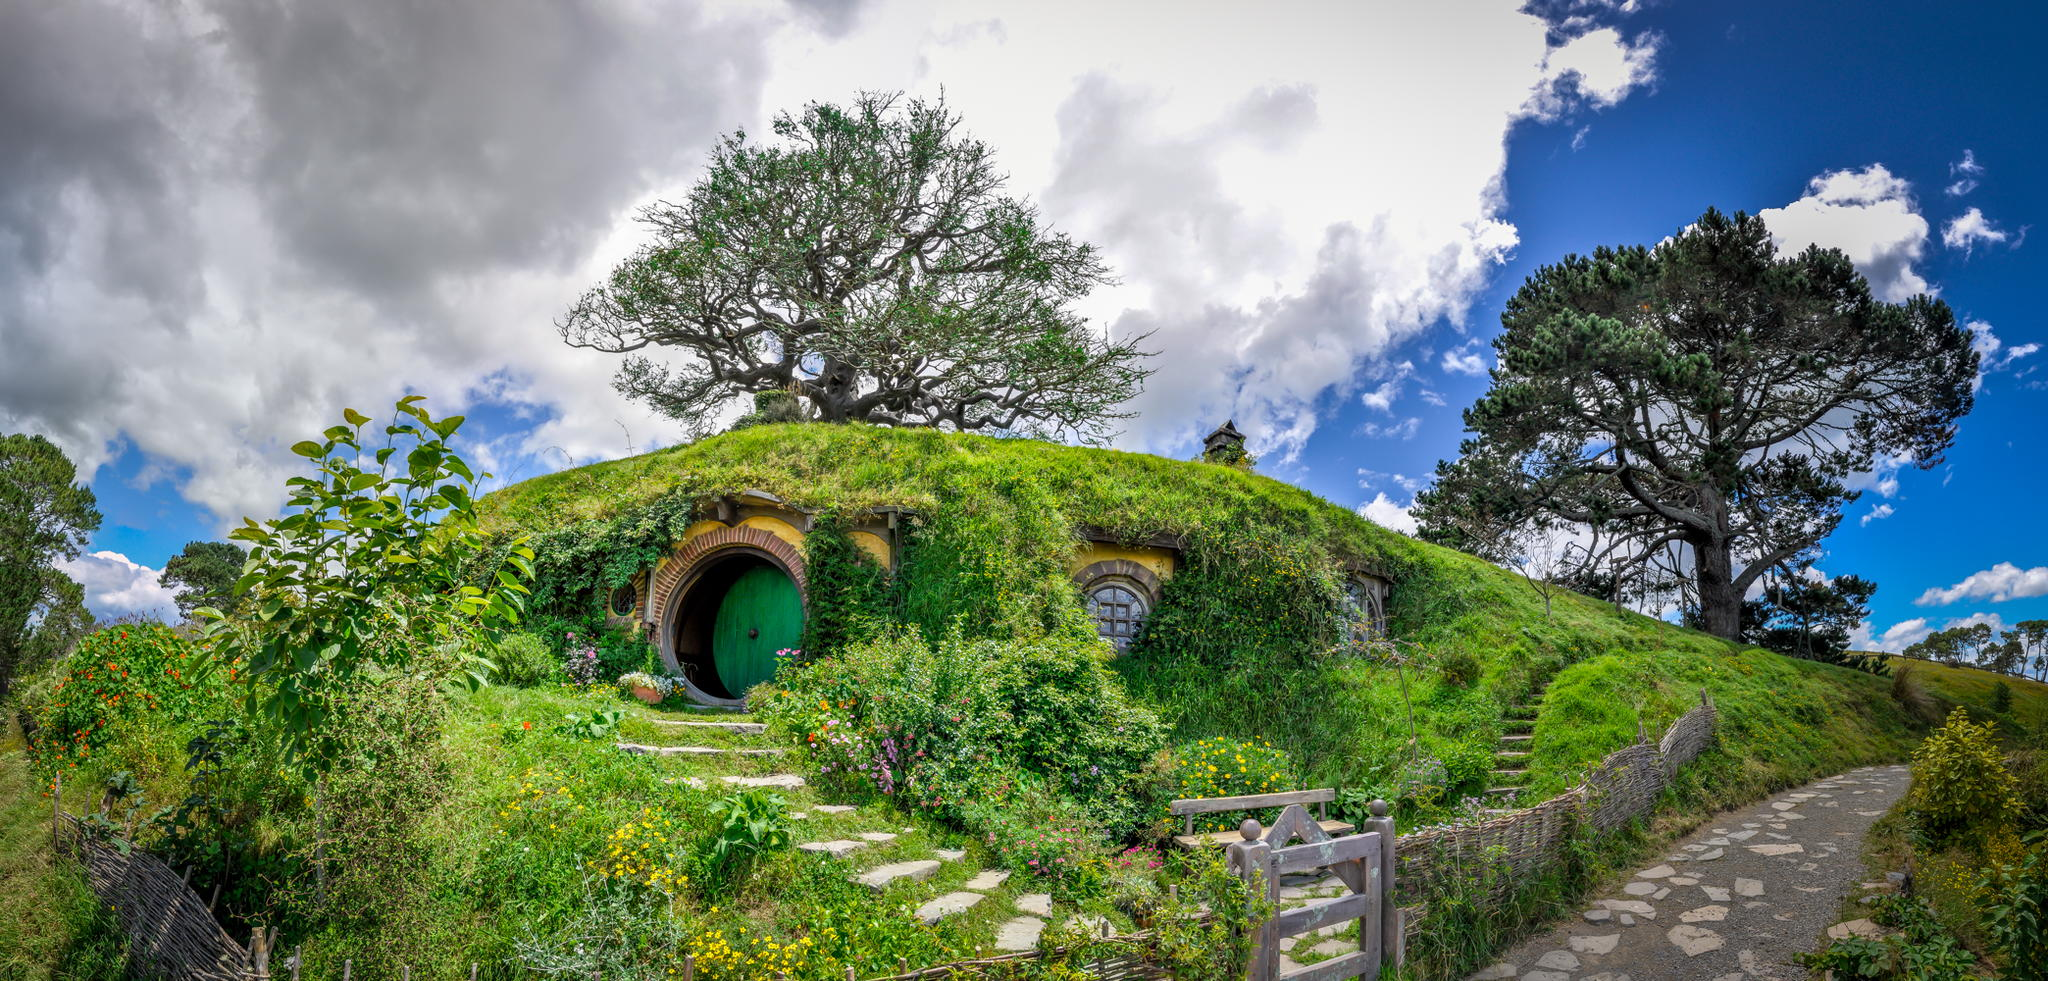 25 Fictional Places You Can Actually Visit In Real Life